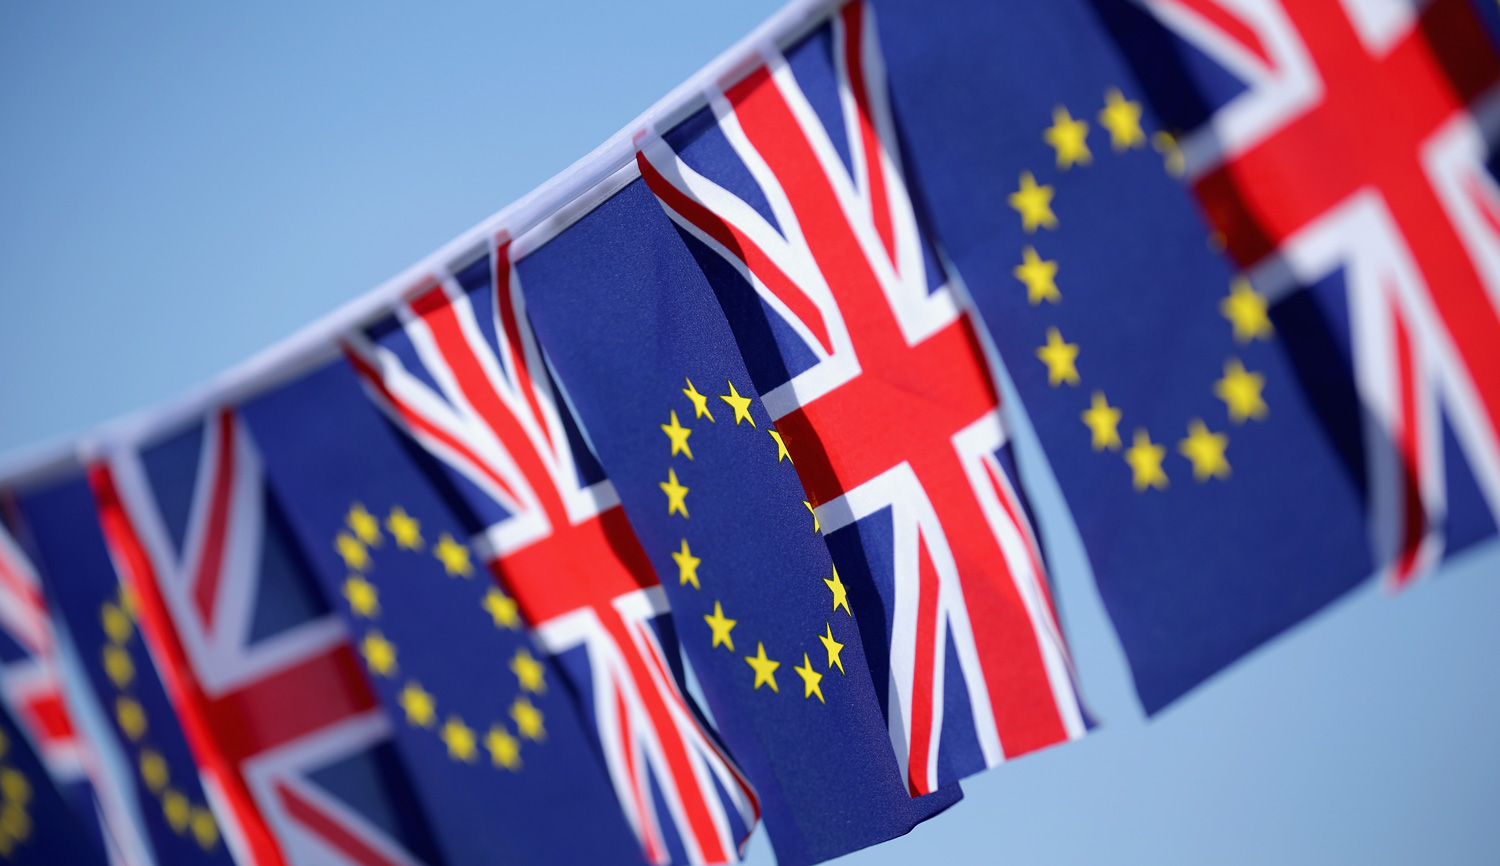 The flags of the European Union and the United Kingdom. Christopher Furlong/Getty Images.